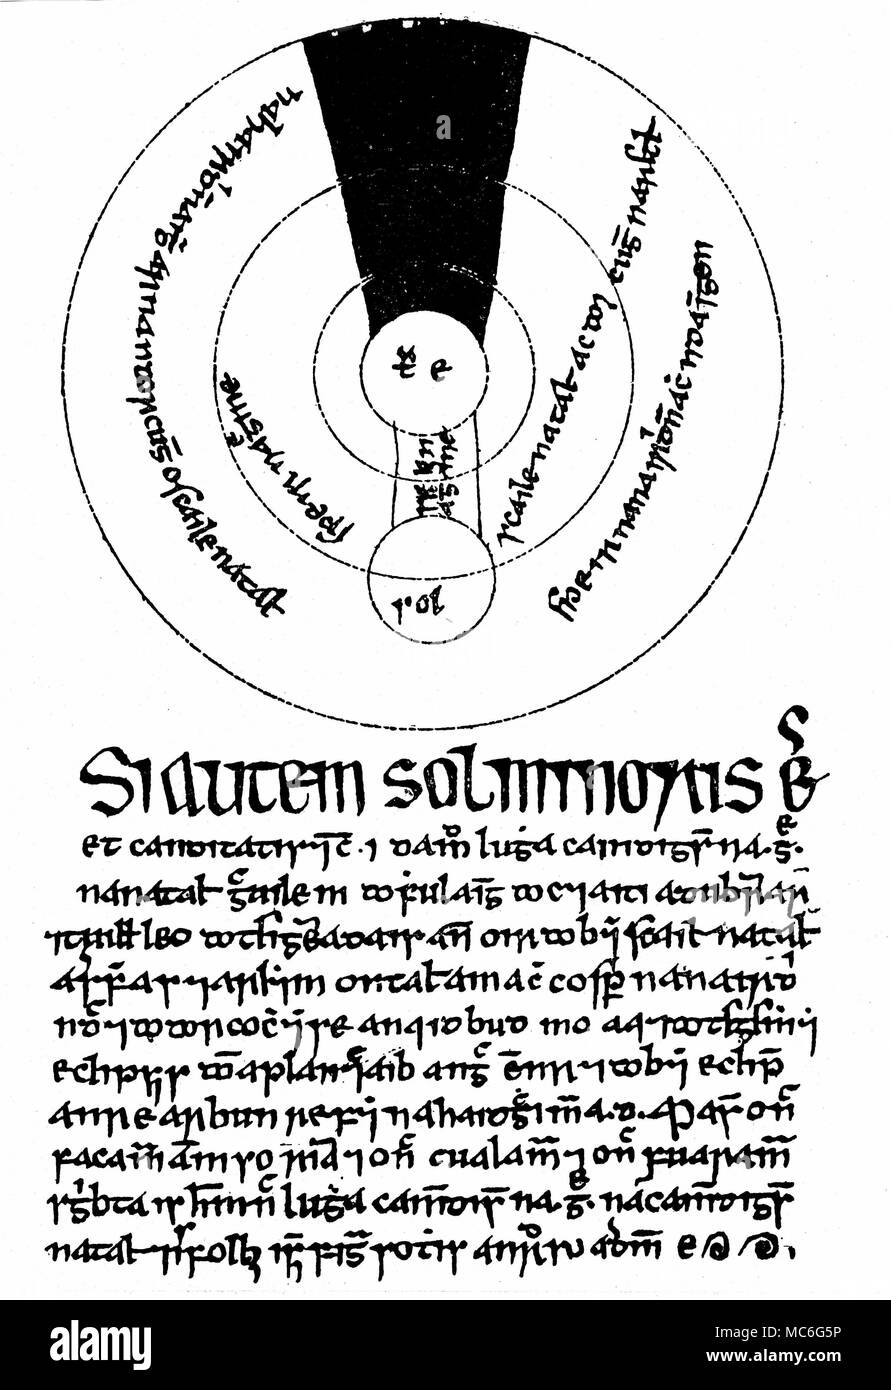 medium resolution of astrology eclipse an irish astronomical diagram of circa 1400 ad illustrating the theory of eclipses being caused by the shadow of the earth